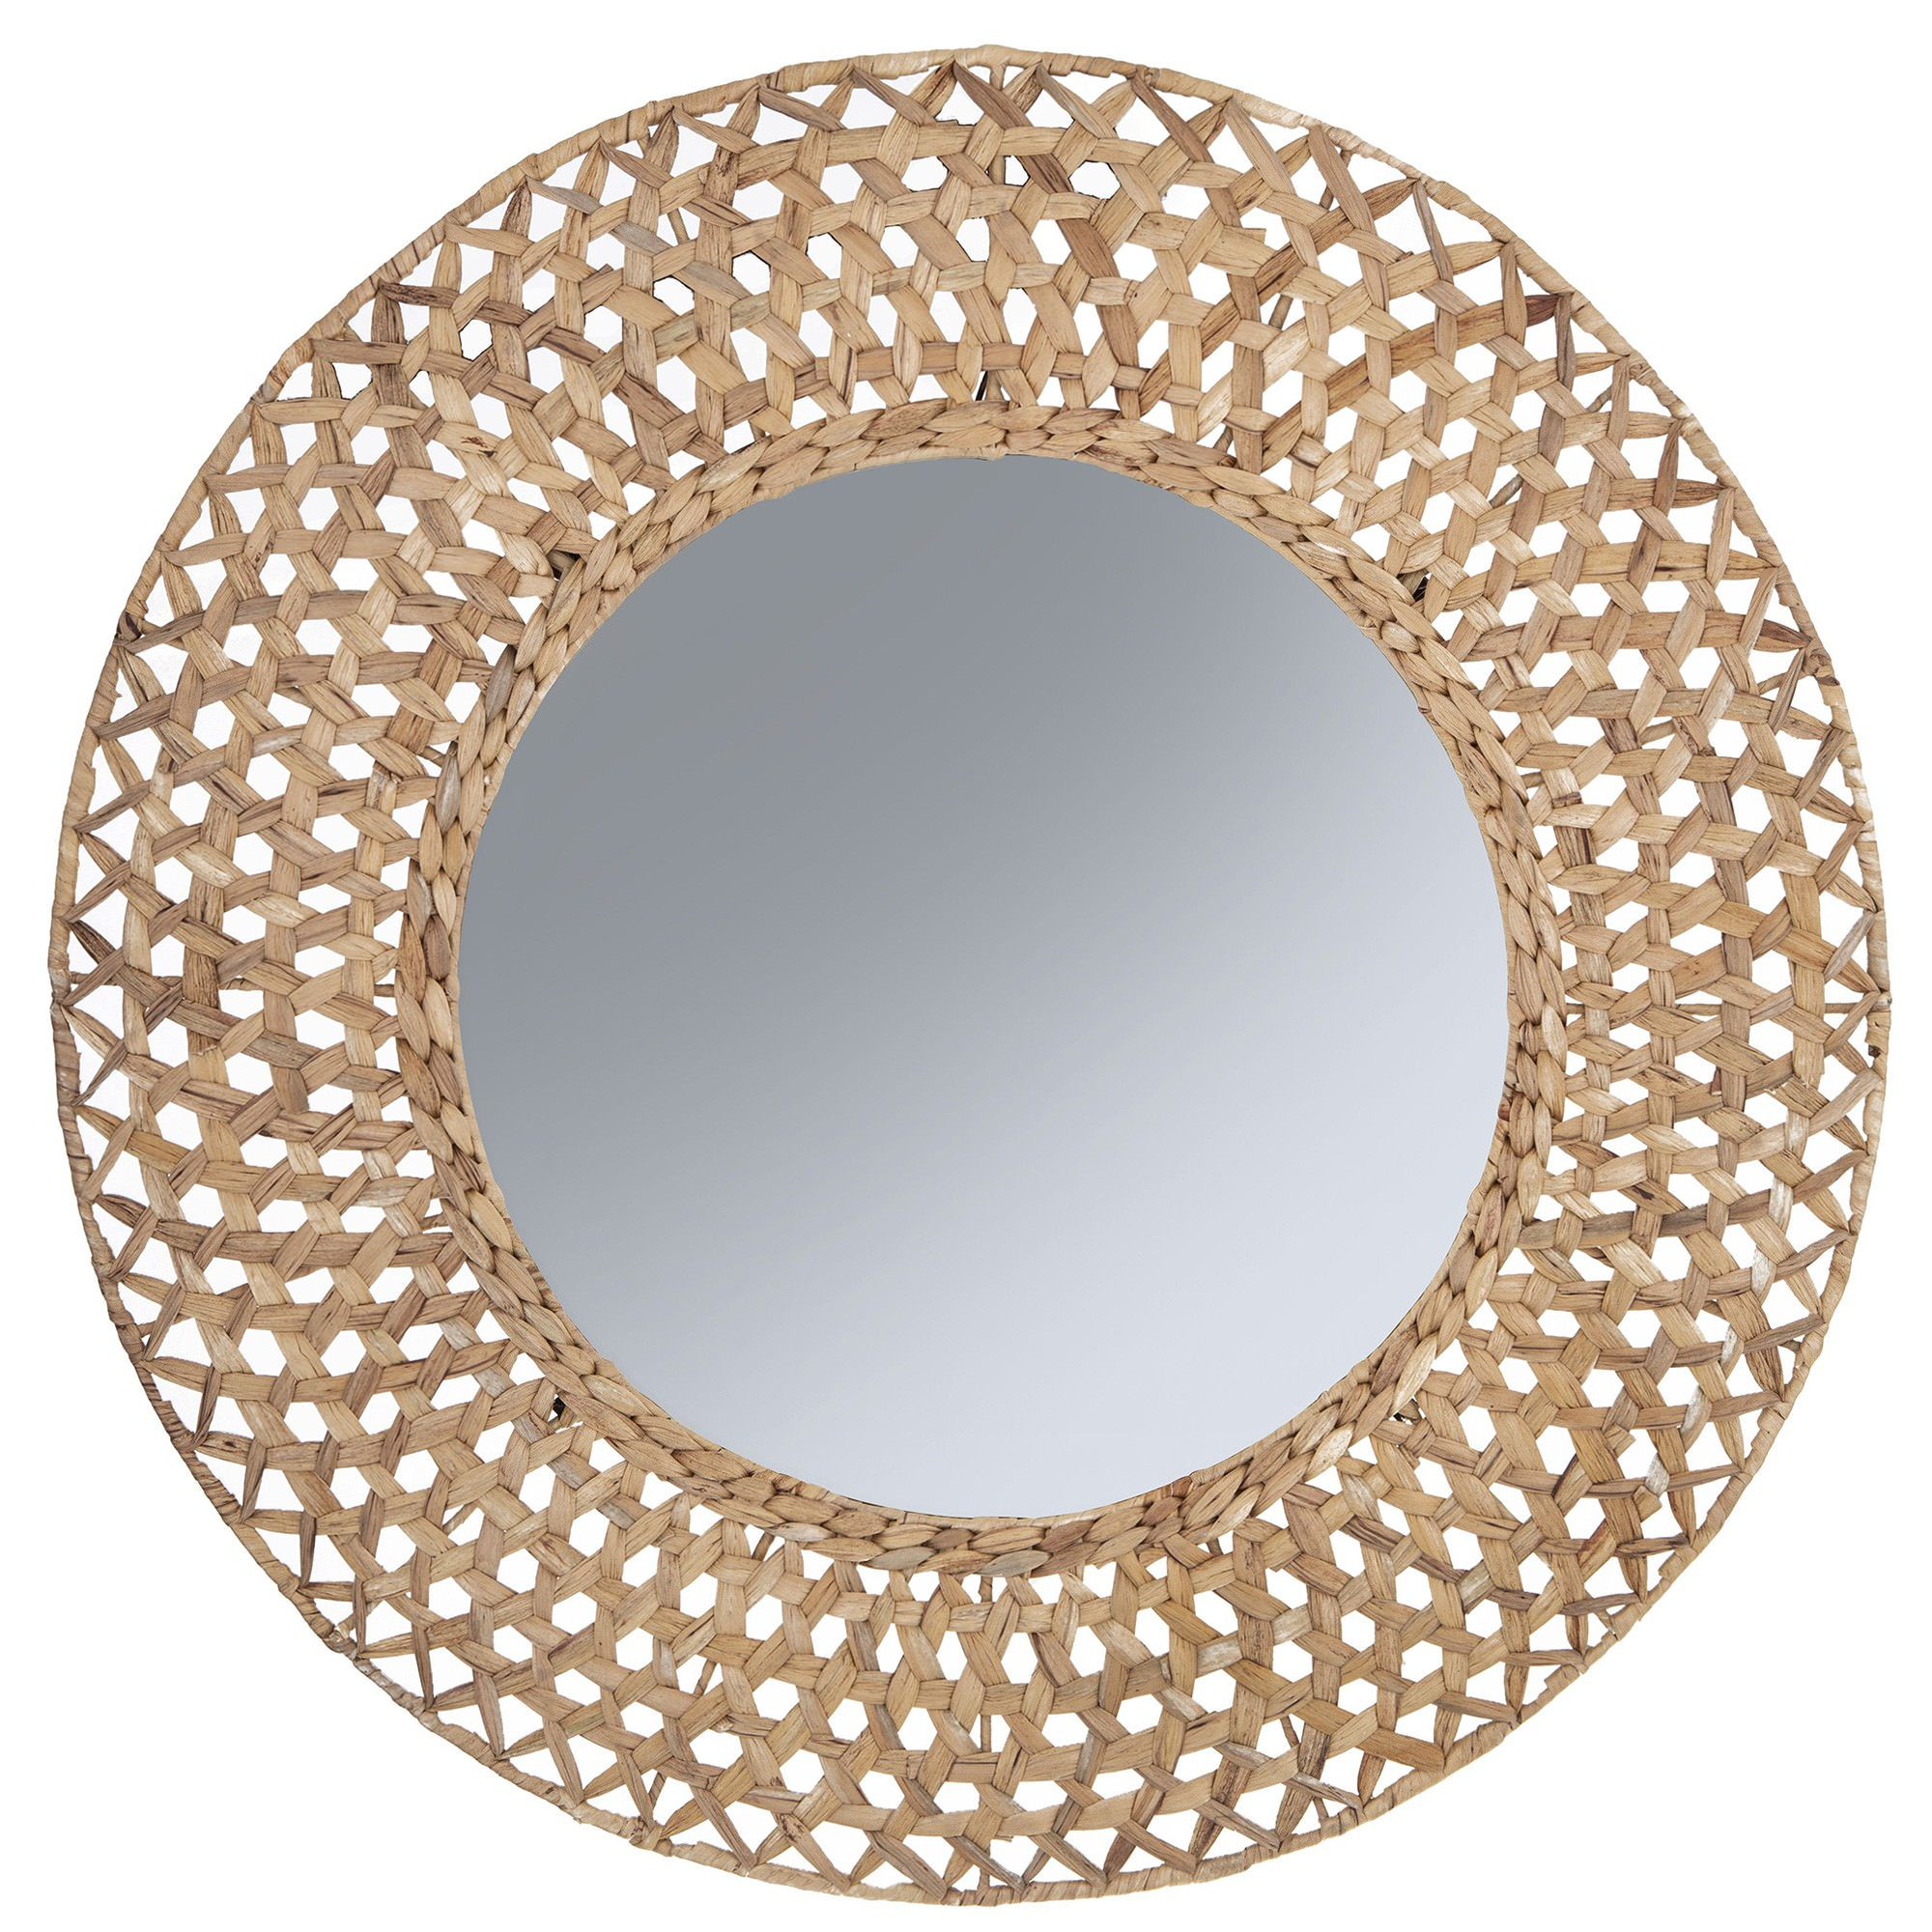 Riviera Water Hyacinth Frame Wall Mirror, 80cm